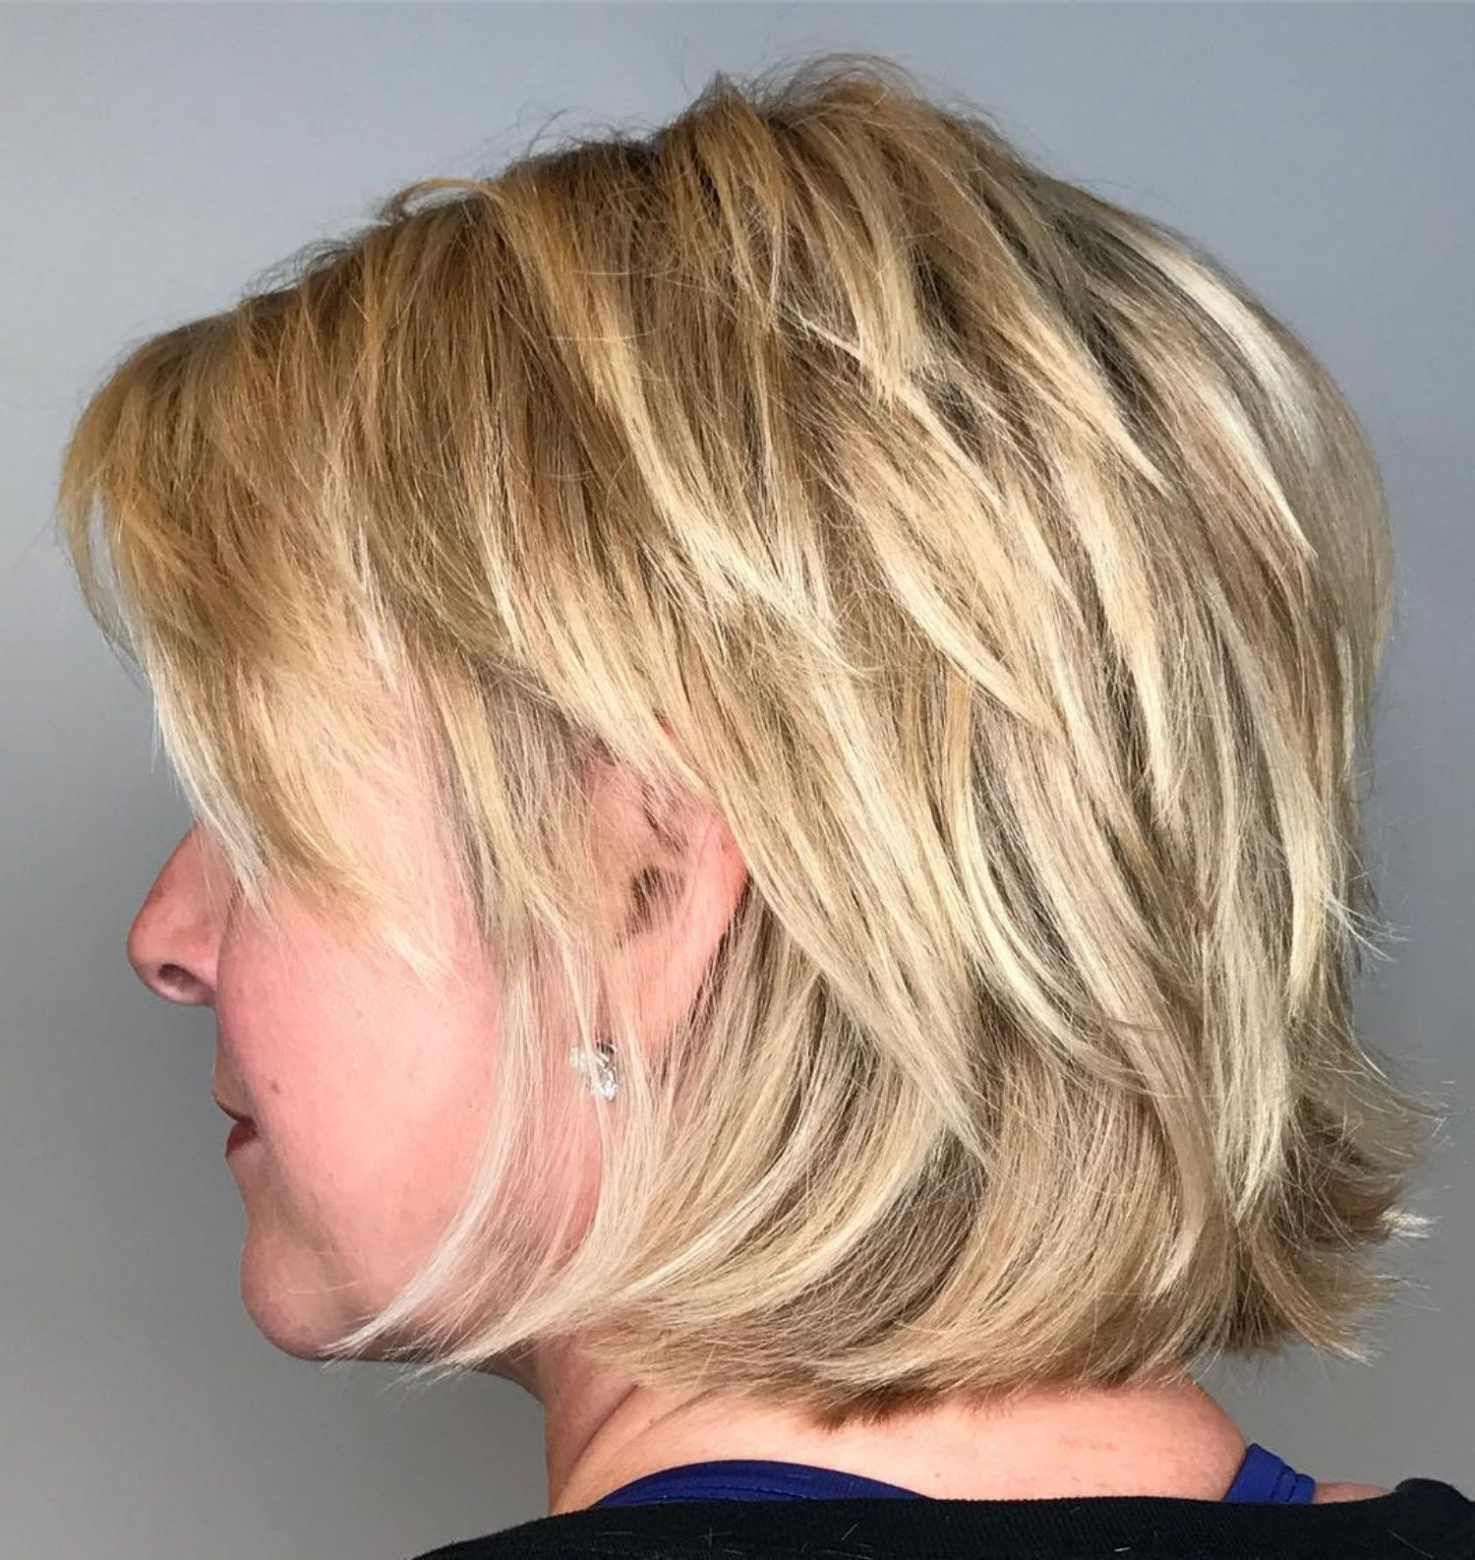 60 Short Shag Hairstyles That You Simply Can't Miss | Short Pertaining To Short Warm Blonde Shag Haircuts (Gallery 9 of 20)